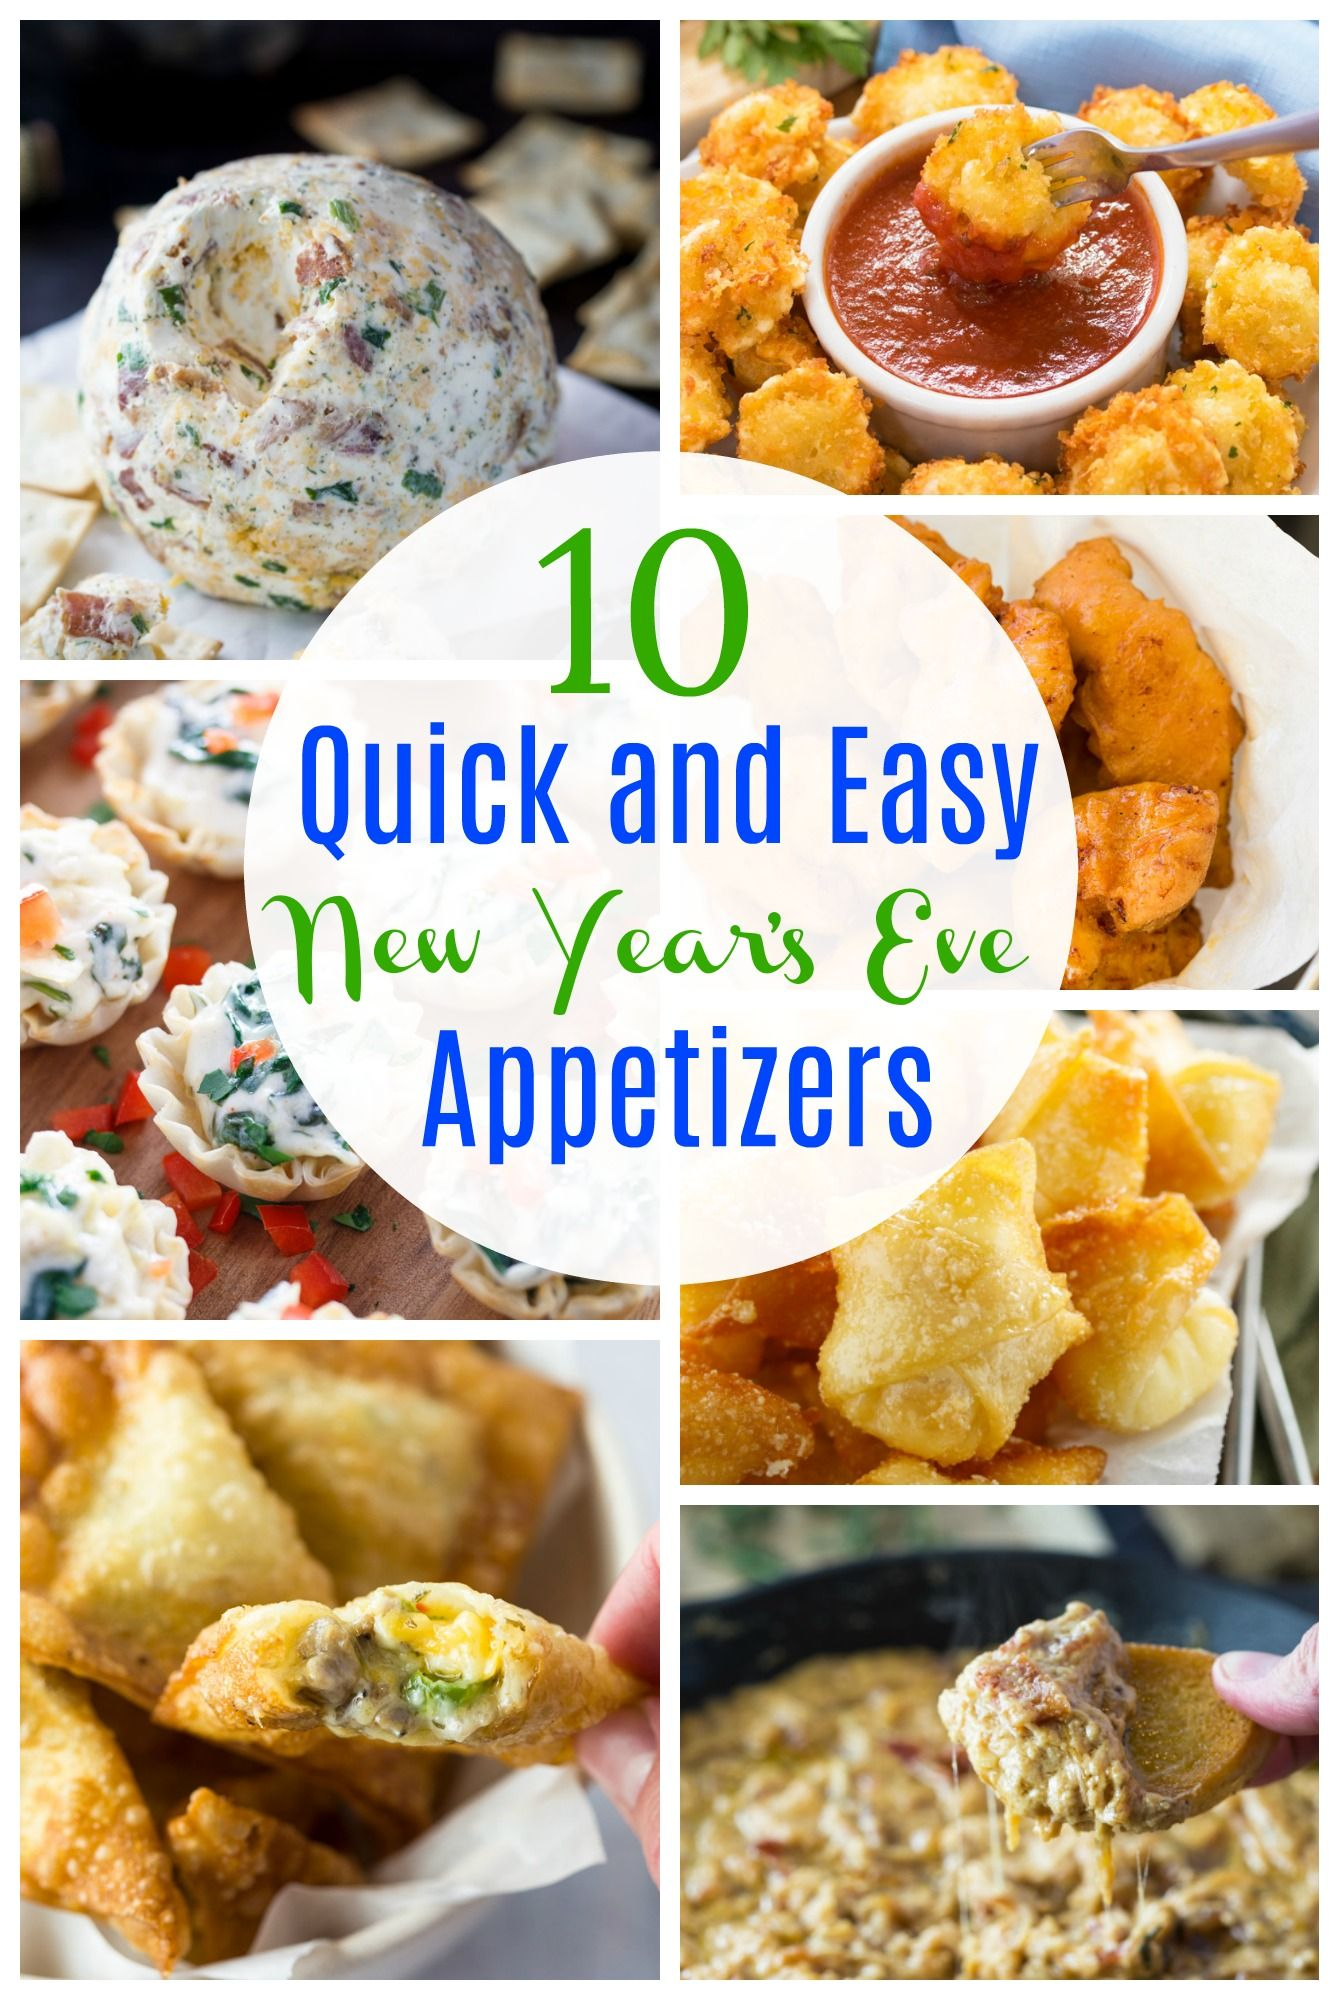 10 quick and easy New Year's Eve Appetizers Appetizers